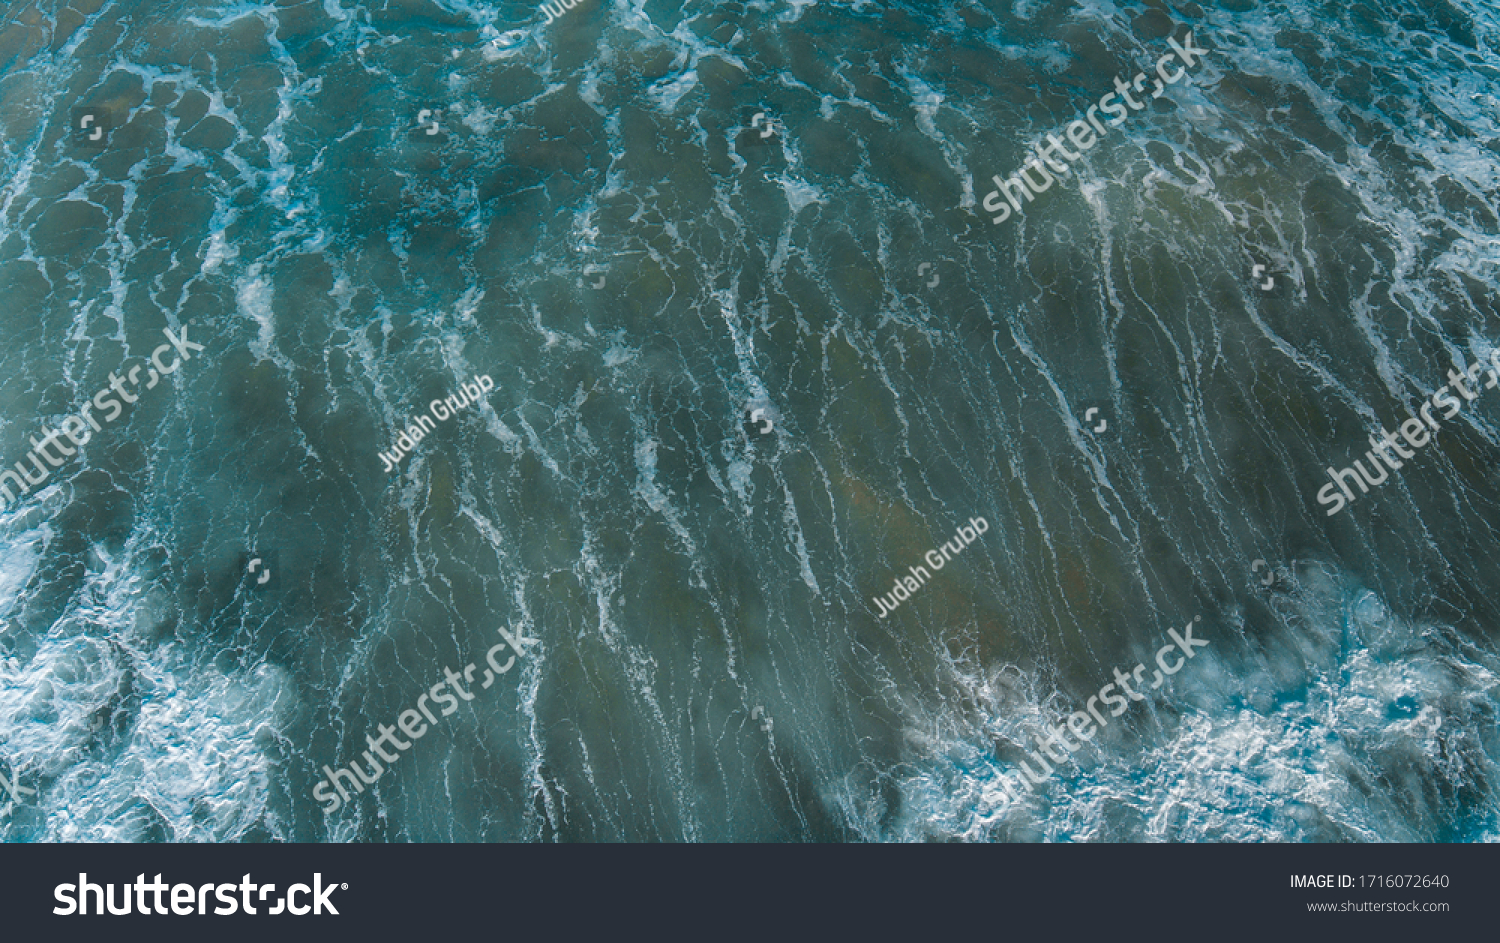 Aerial Views of Coastline and waves and beaches along the Great Ocean Road, Australia #1716072640